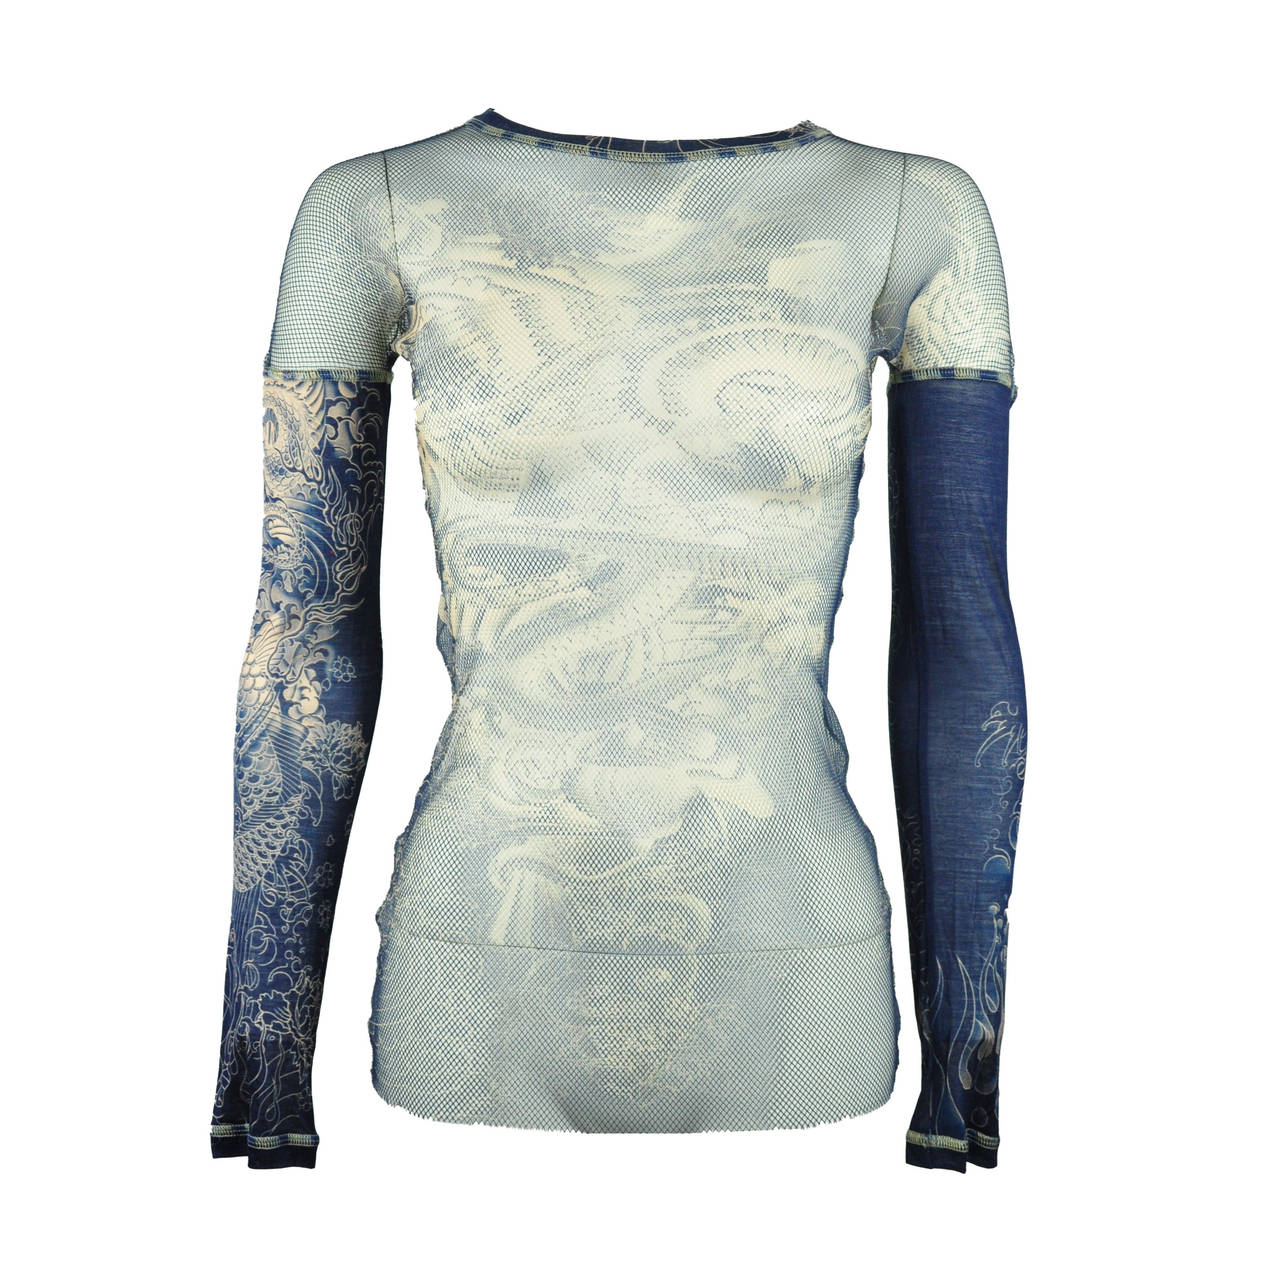 Jean Paul Gaultier Tattoo Print Mesh Top 1